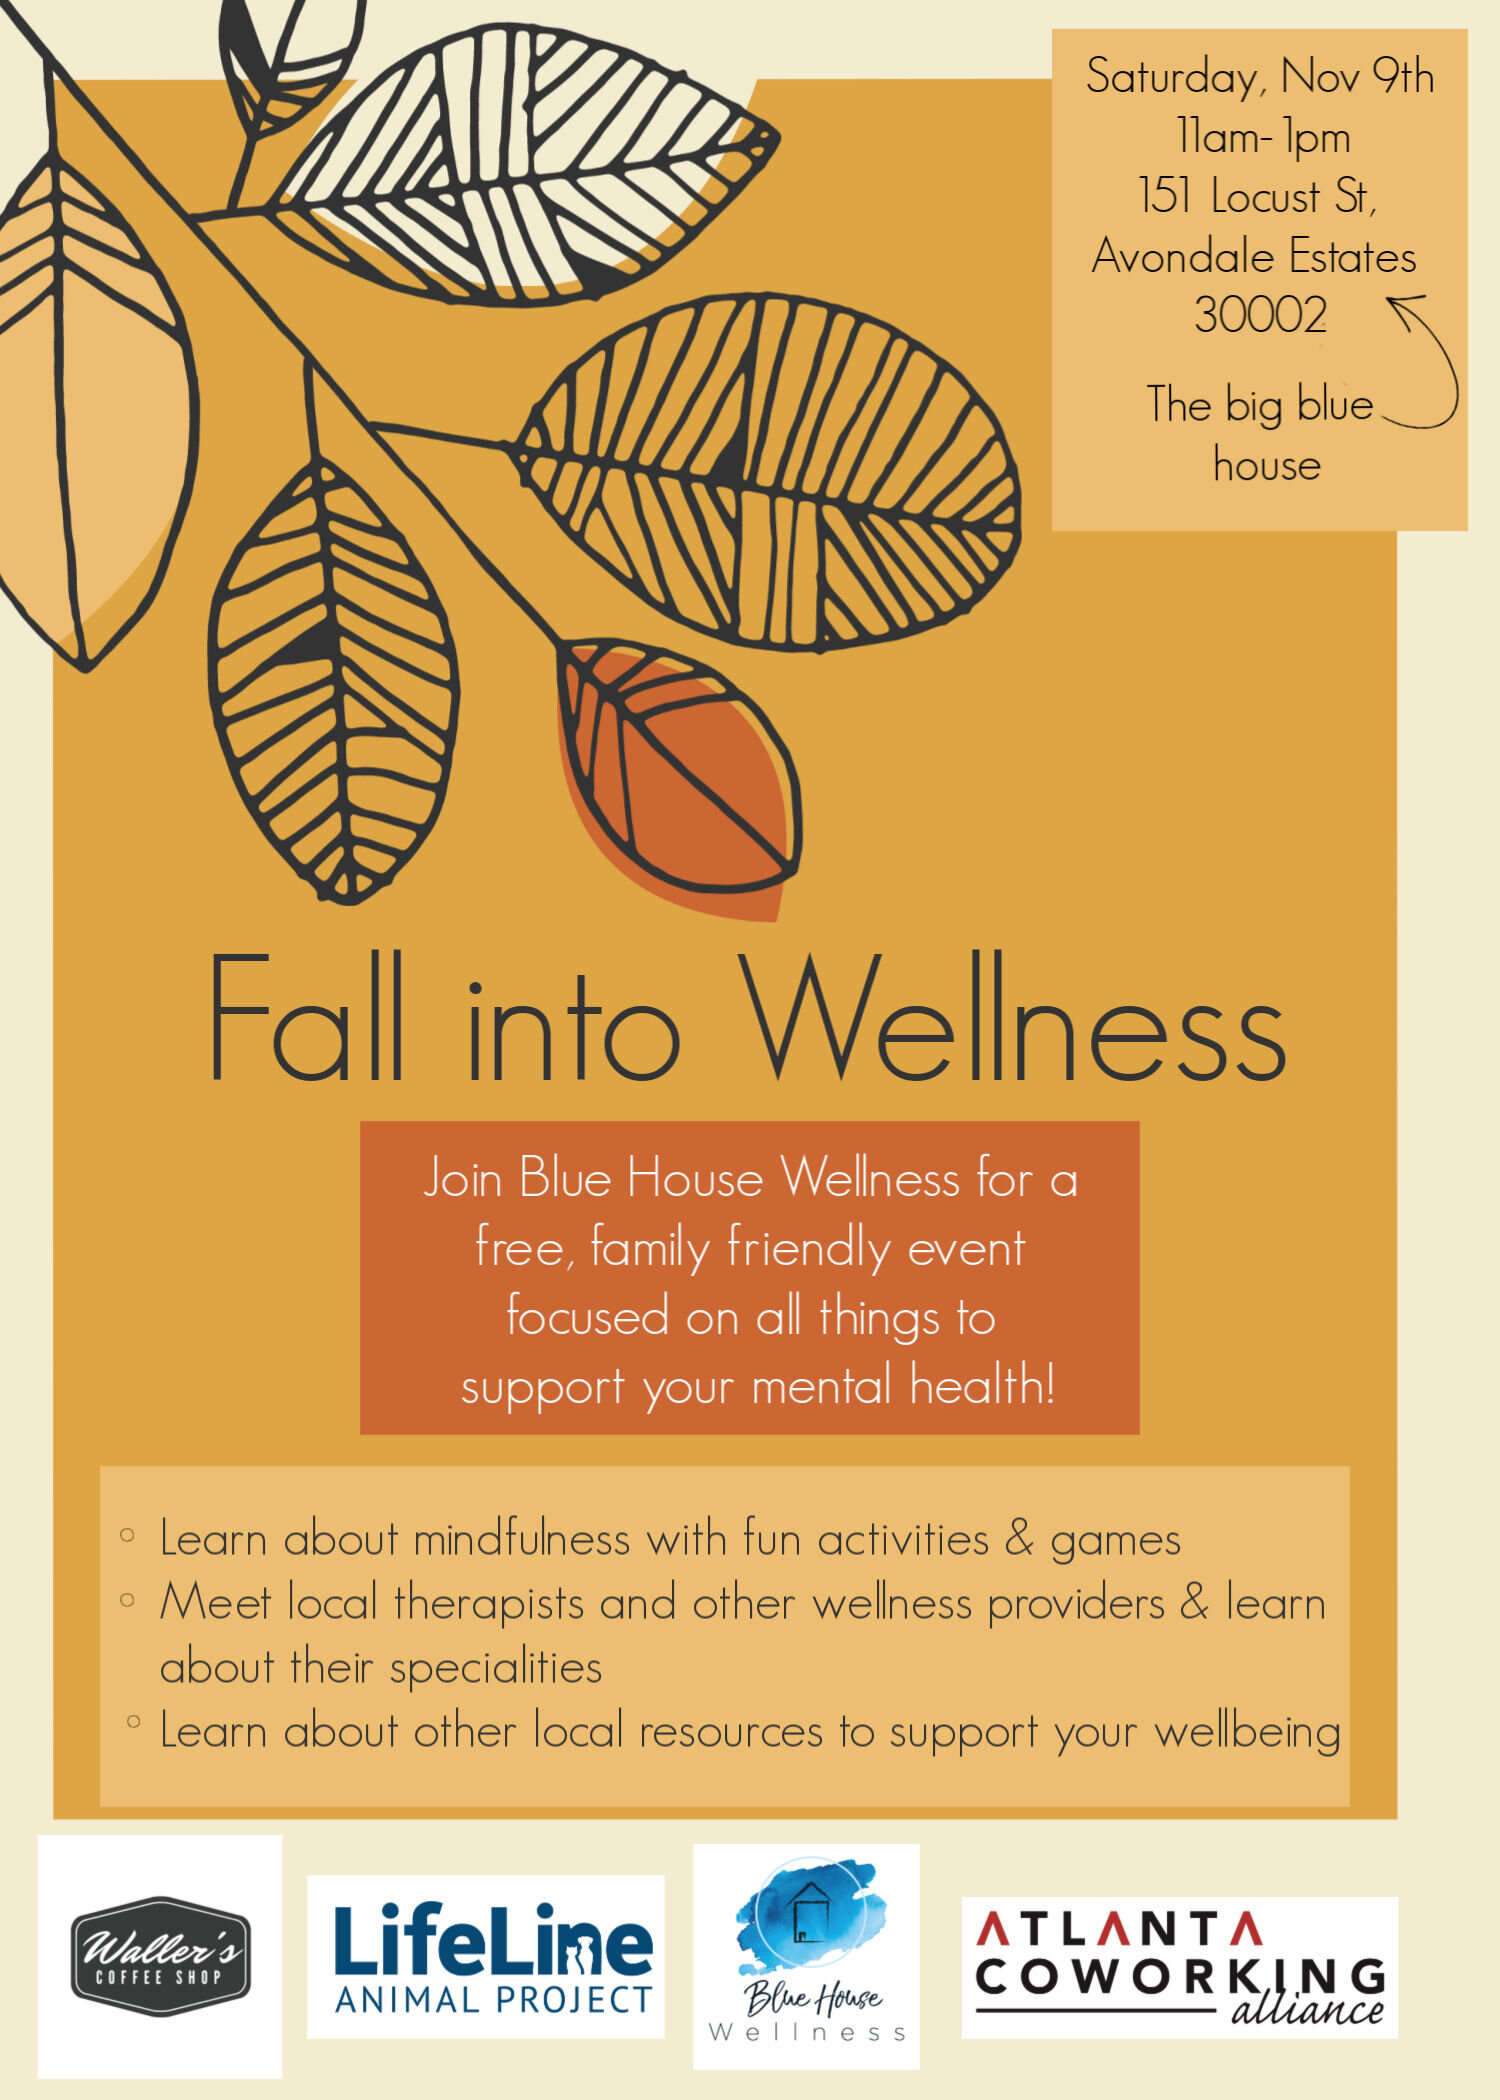 Fall Into Wellness - Come hang out with me in Decatur at Blue House Wellness for their family-friendly Fall Into Wellness event! Play games, meet local therapists, and learn about wellness services in the area. See you there!